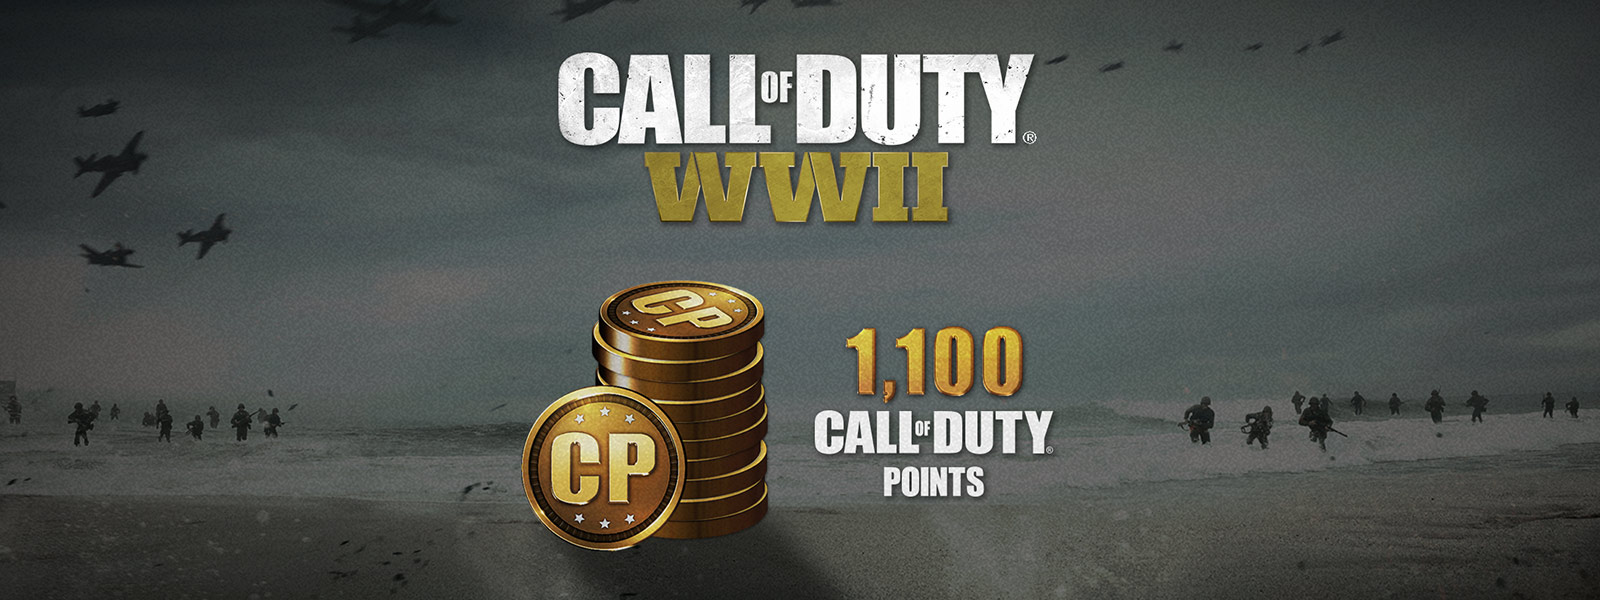 a stack of Call of Duty Point coins with soldiers storm beach in Normandy in the background